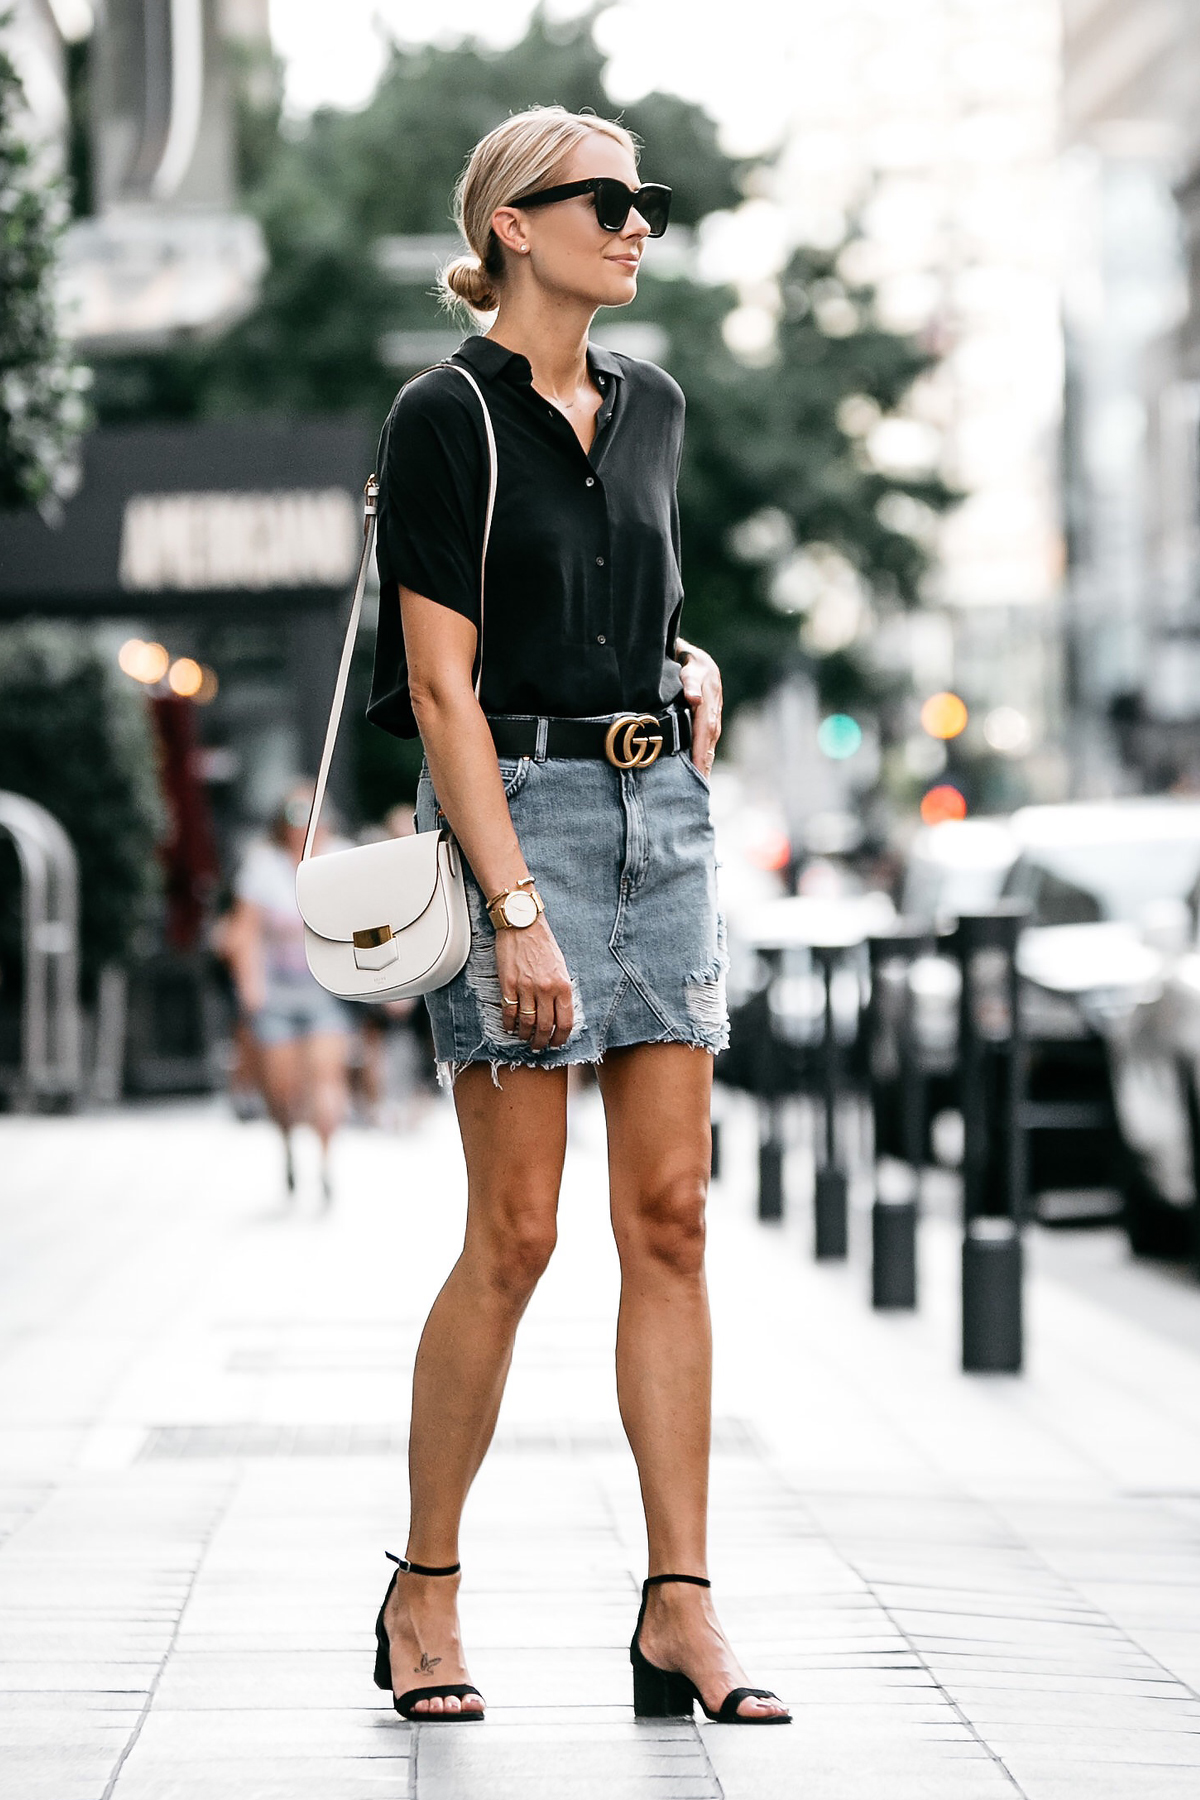 Blonde Woman Wearing Everlane Black Short Sleeve Shirt Topshop Ripped Denim Skirt Outfit Gucci Marmont Belt Celine Trotteur White Handbag Black Ankle Strap Sandals Fashion Jackson Dallas Blogger Fashion Blogger Street Style